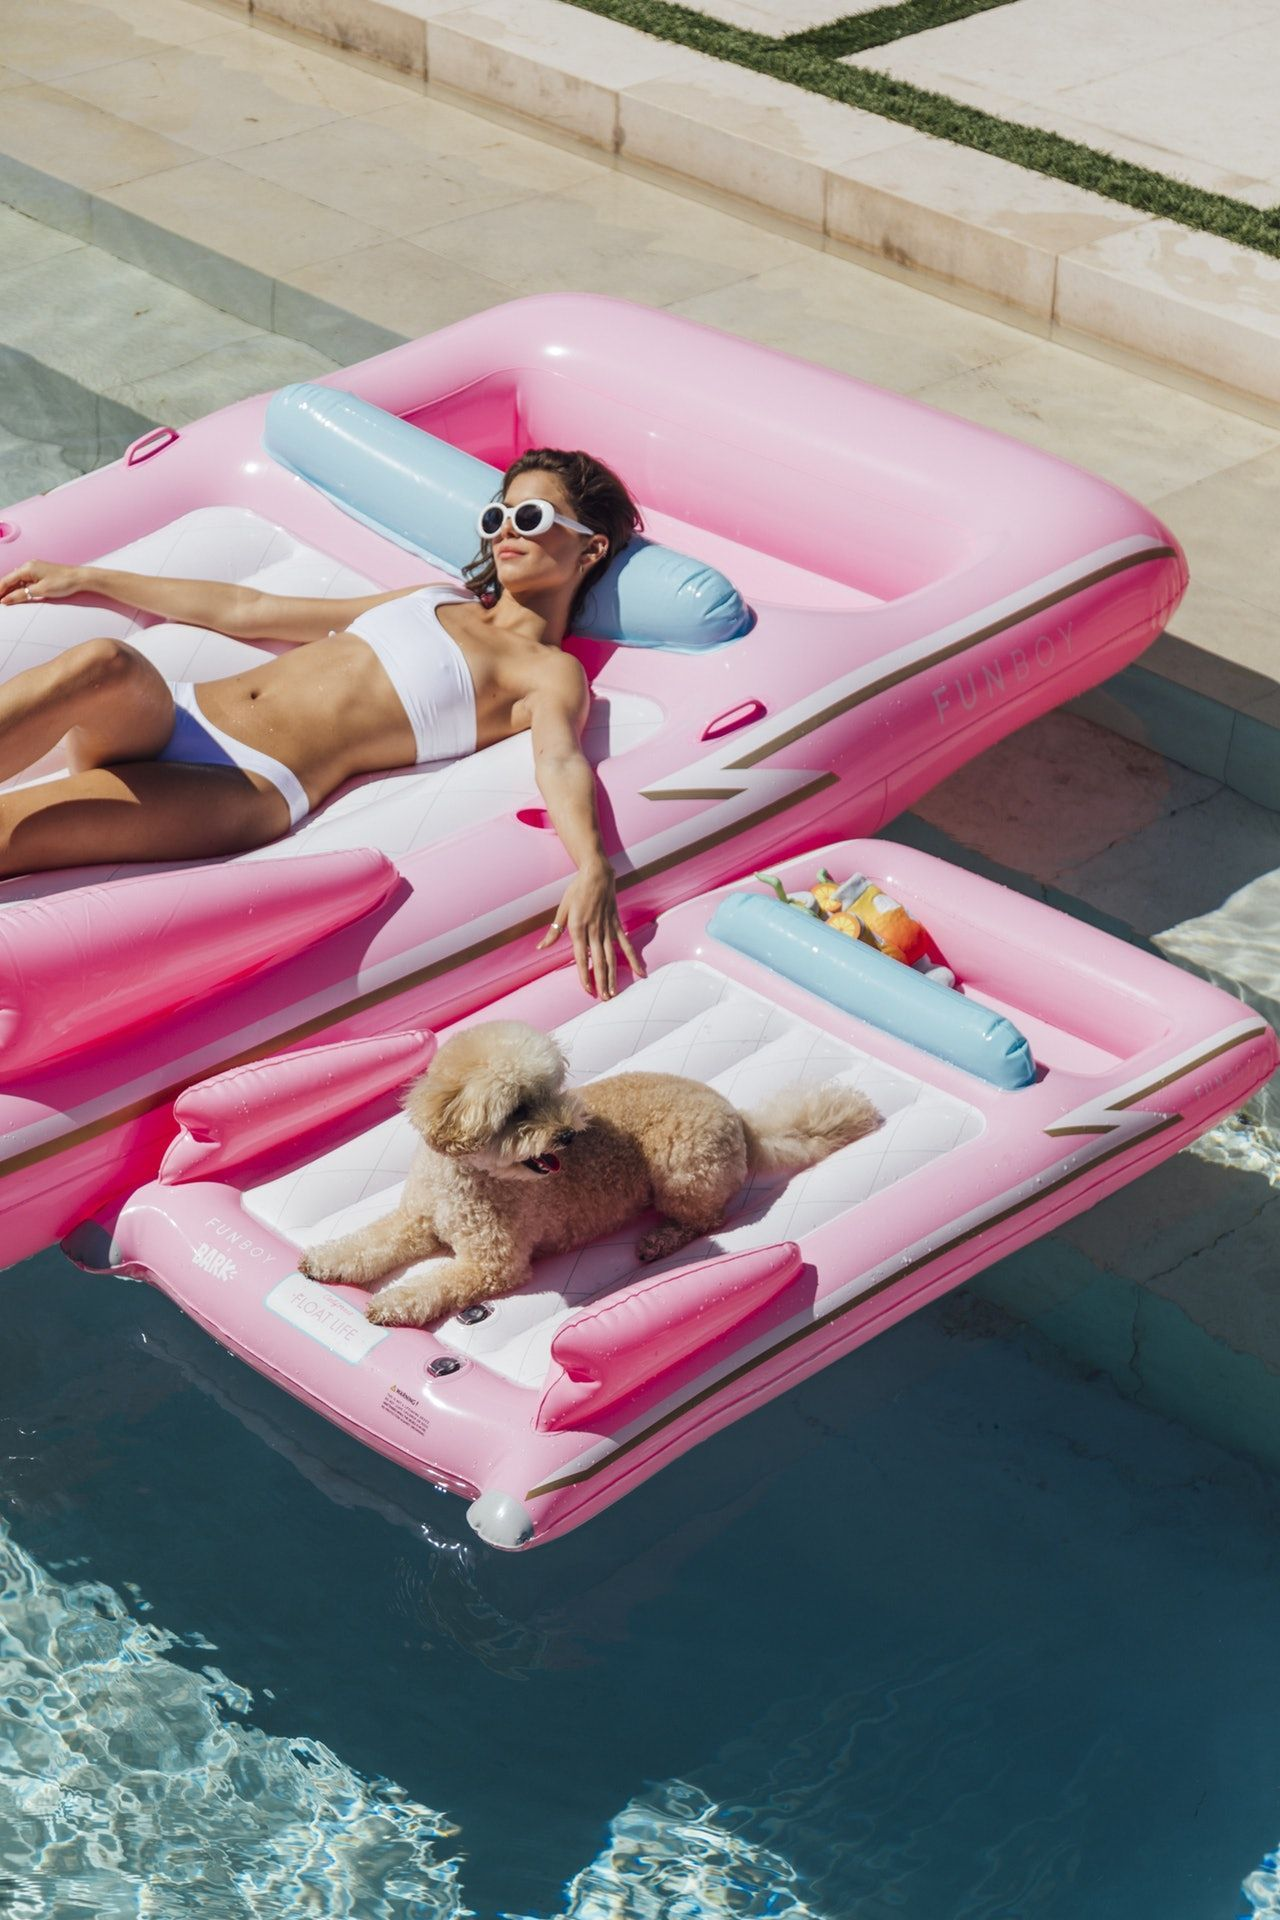 Funboy x Bark Pool Floats For You & Your Dog Are Adorable